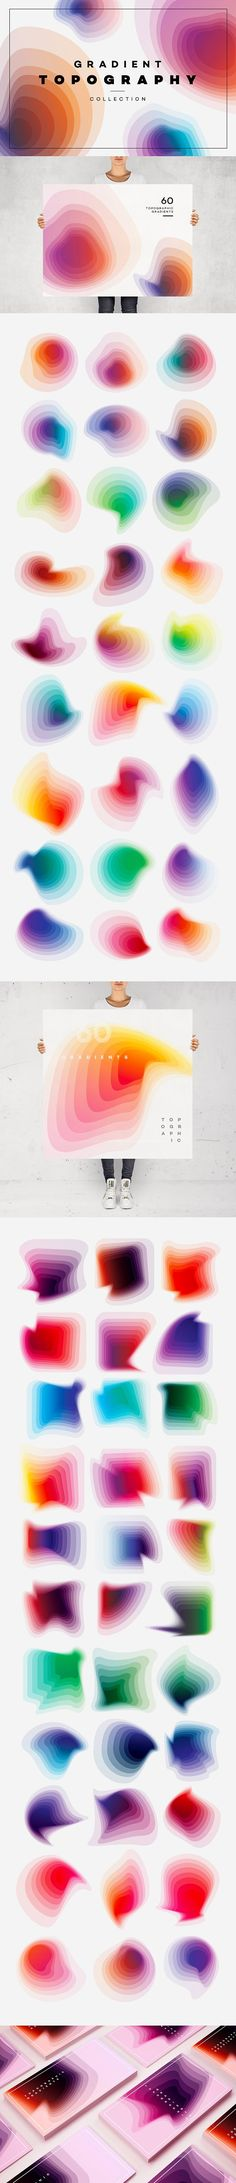 gradient typography - graphic design collection